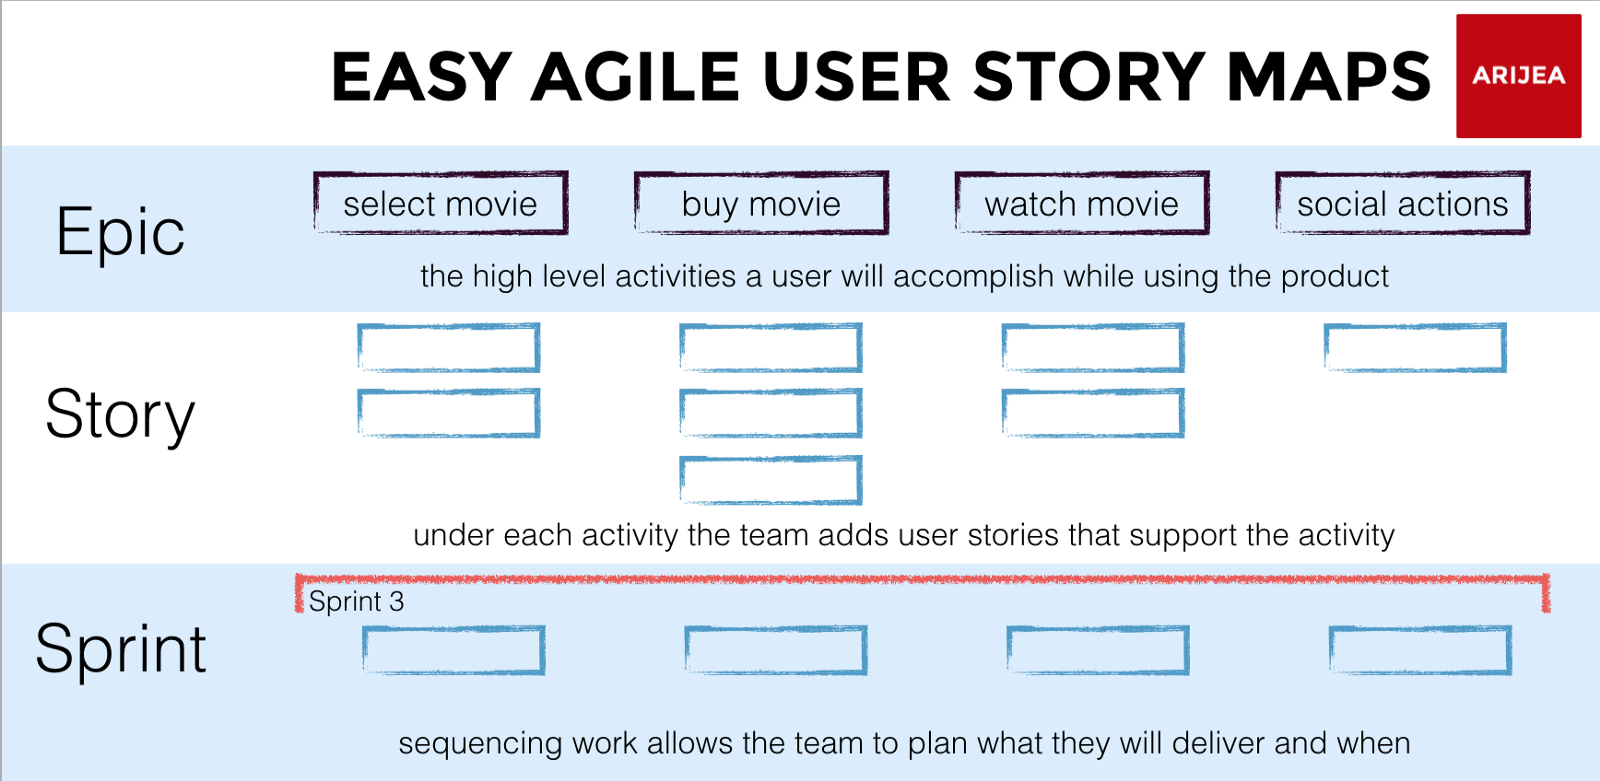 anatomy of an agile user story map easy agile. Black Bedroom Furniture Sets. Home Design Ideas